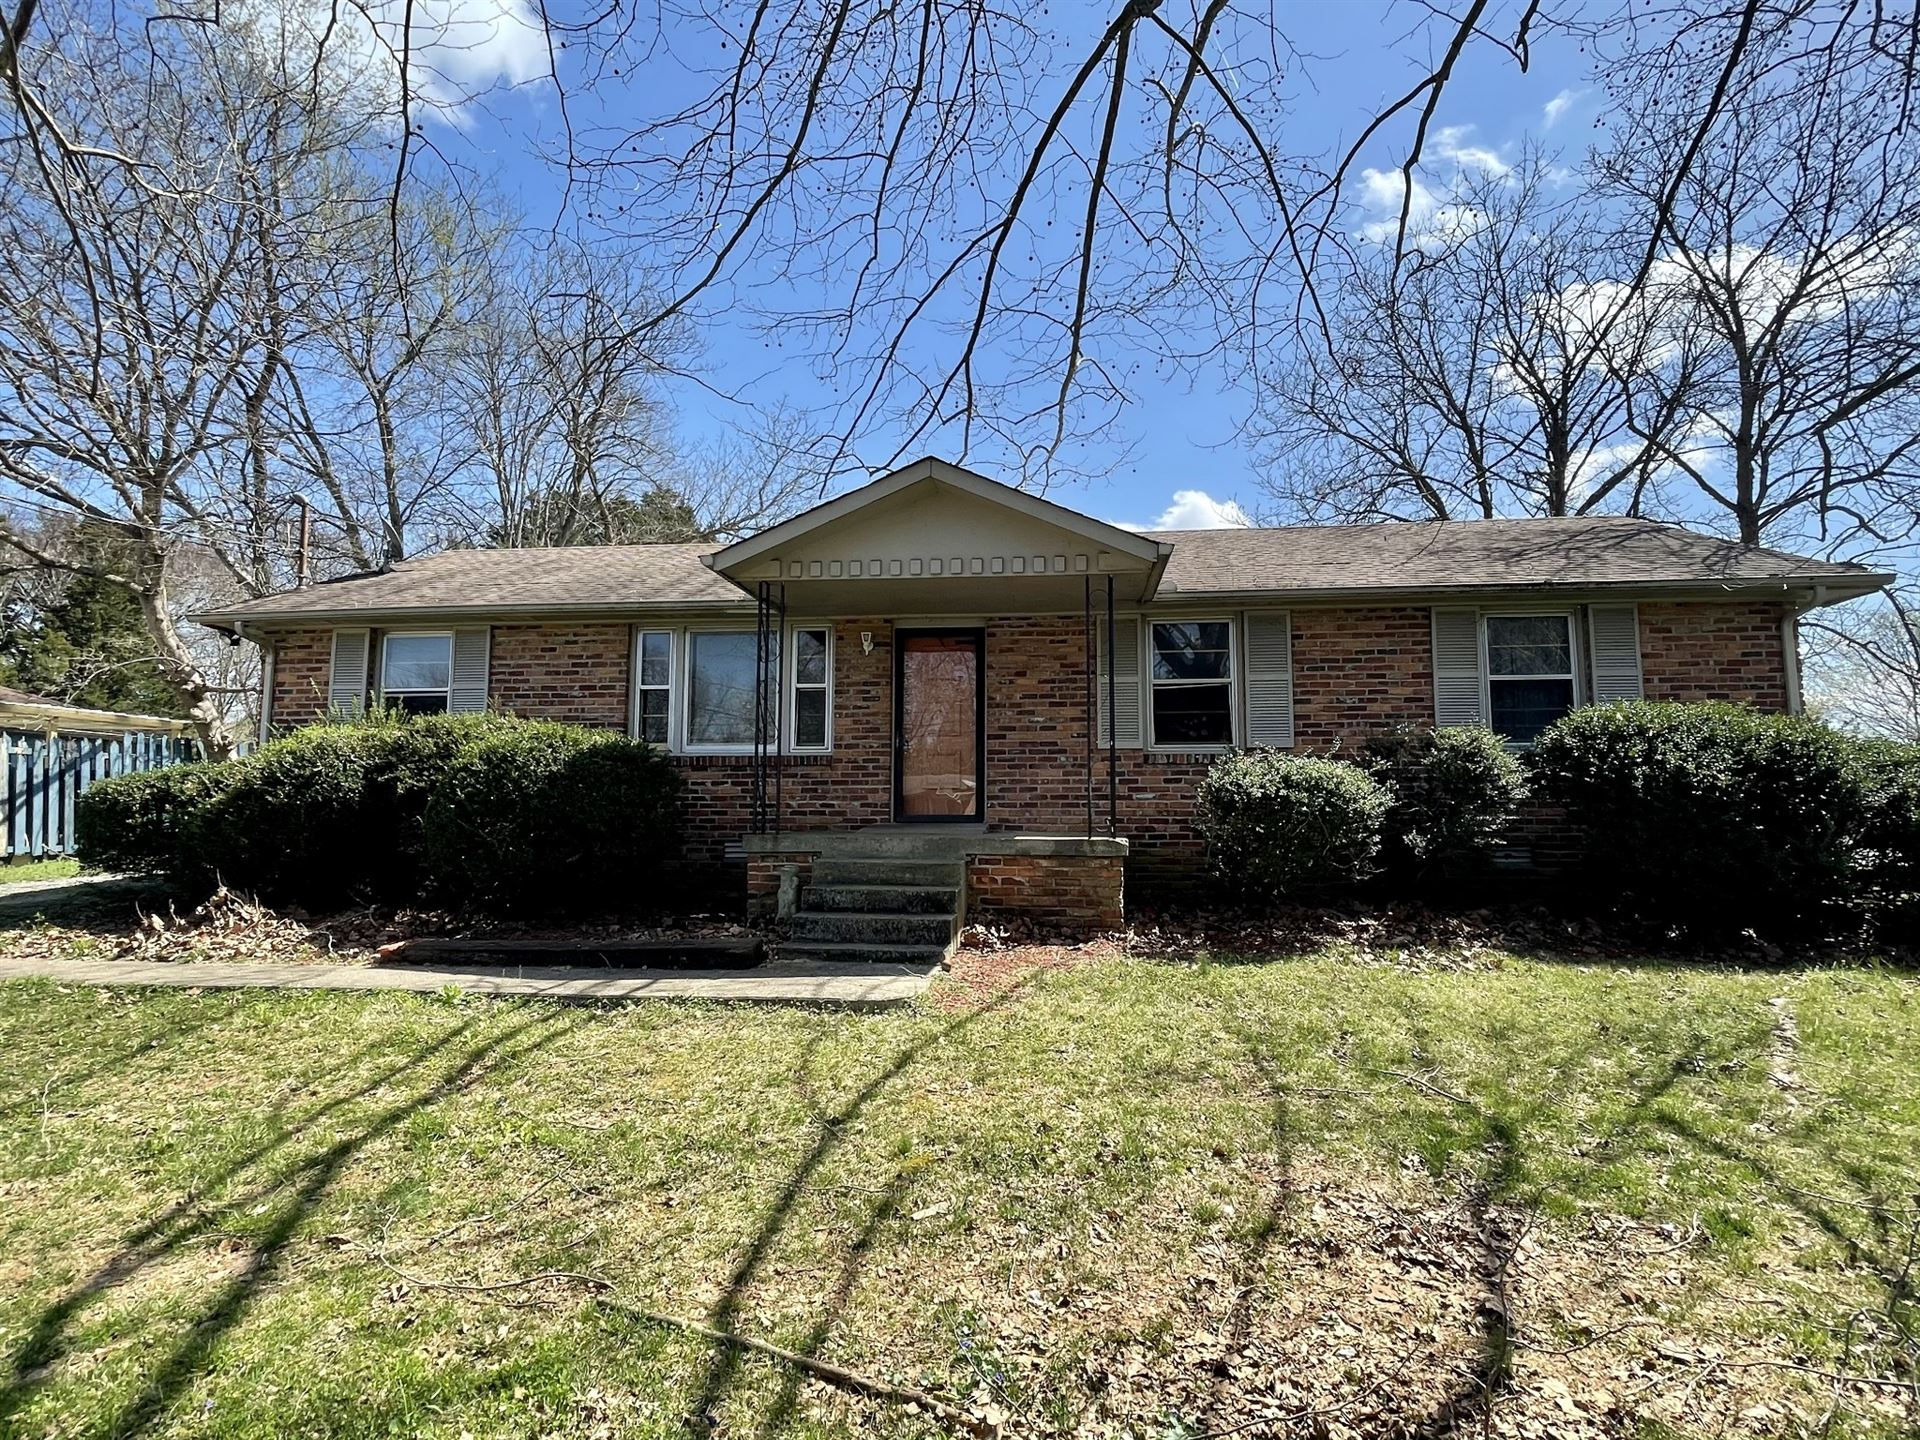 6546 Longview Dr, Murfreesboro, TN 37129 - MLS#: 2238588